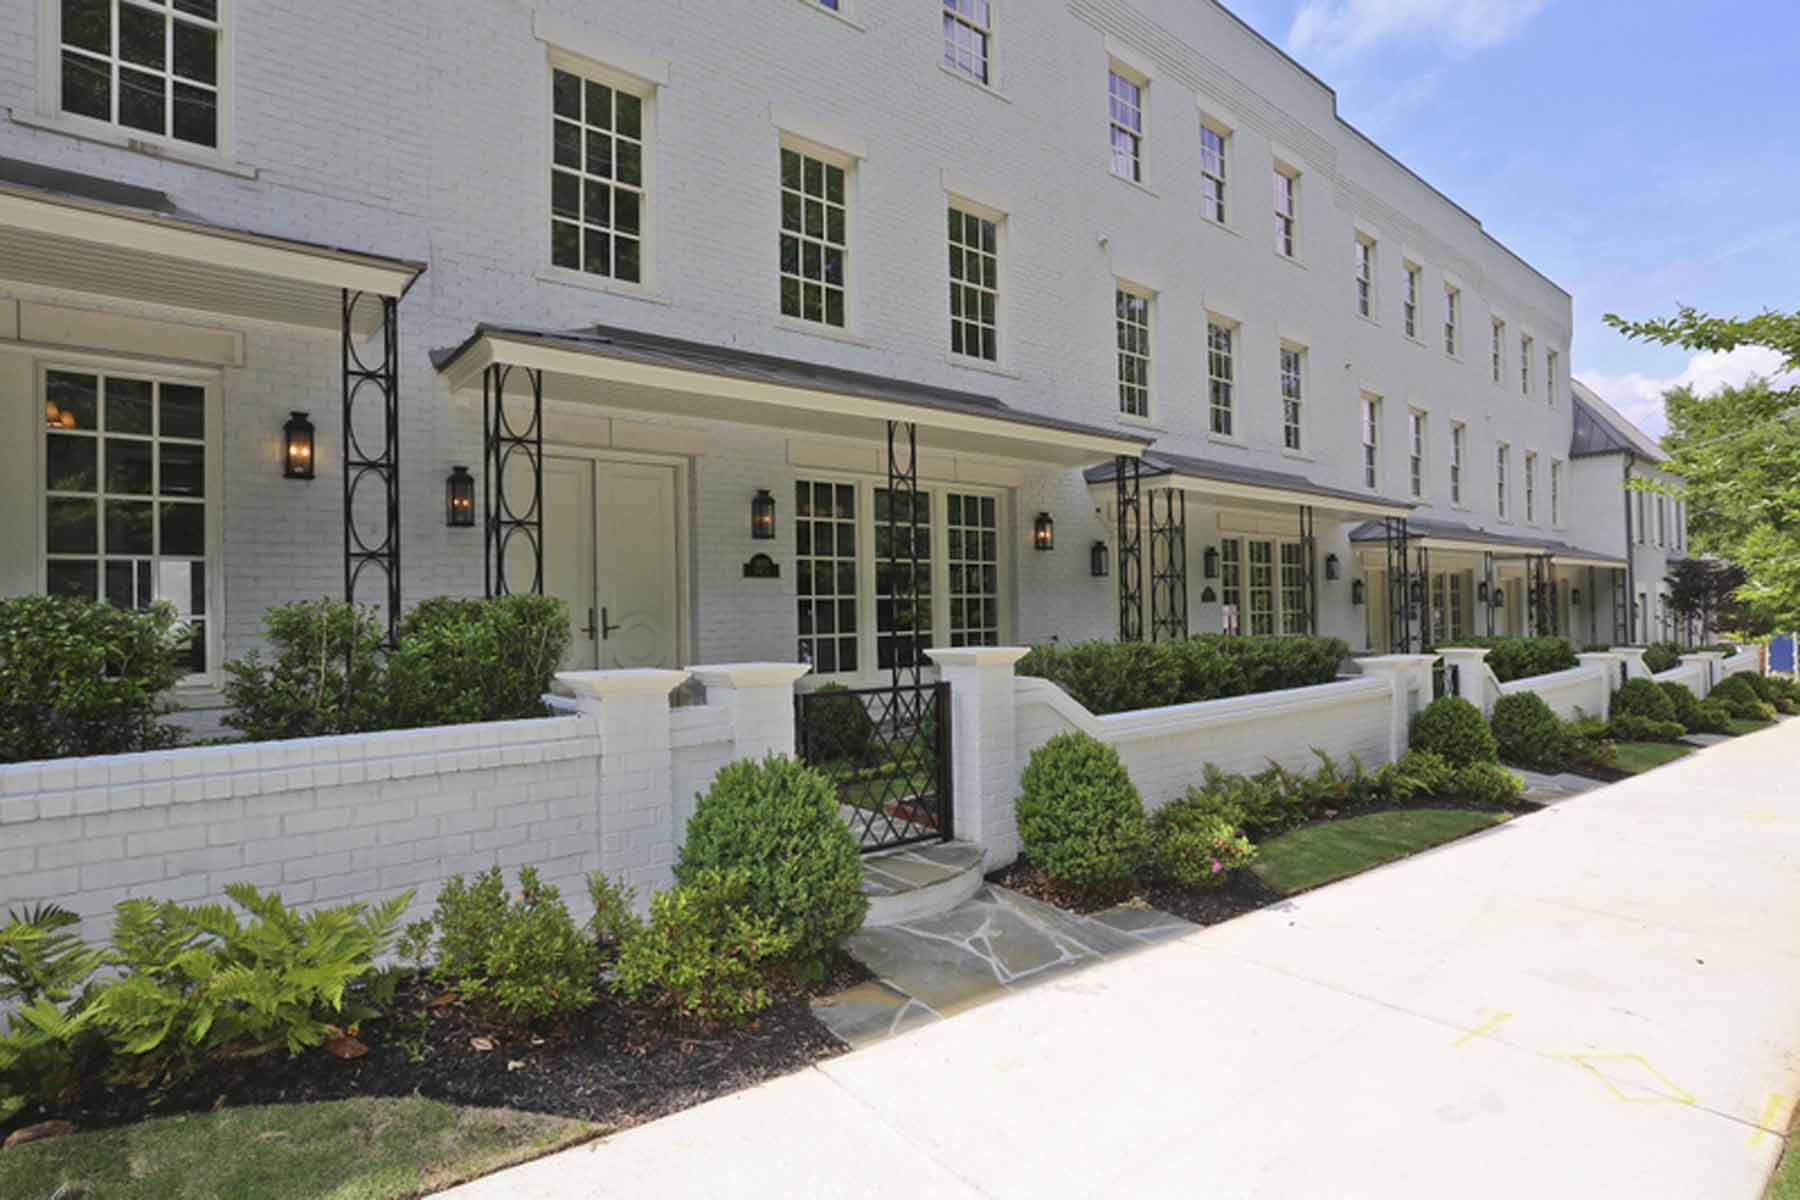 Таунхаус для того Продажа на BRAND NEW TOWNHOME BY MONTE HEWETT HOMES. 1400 Piedmont Avenue NE No. 5 Atlanta, Джорджия, 30309 Соединенные Штаты